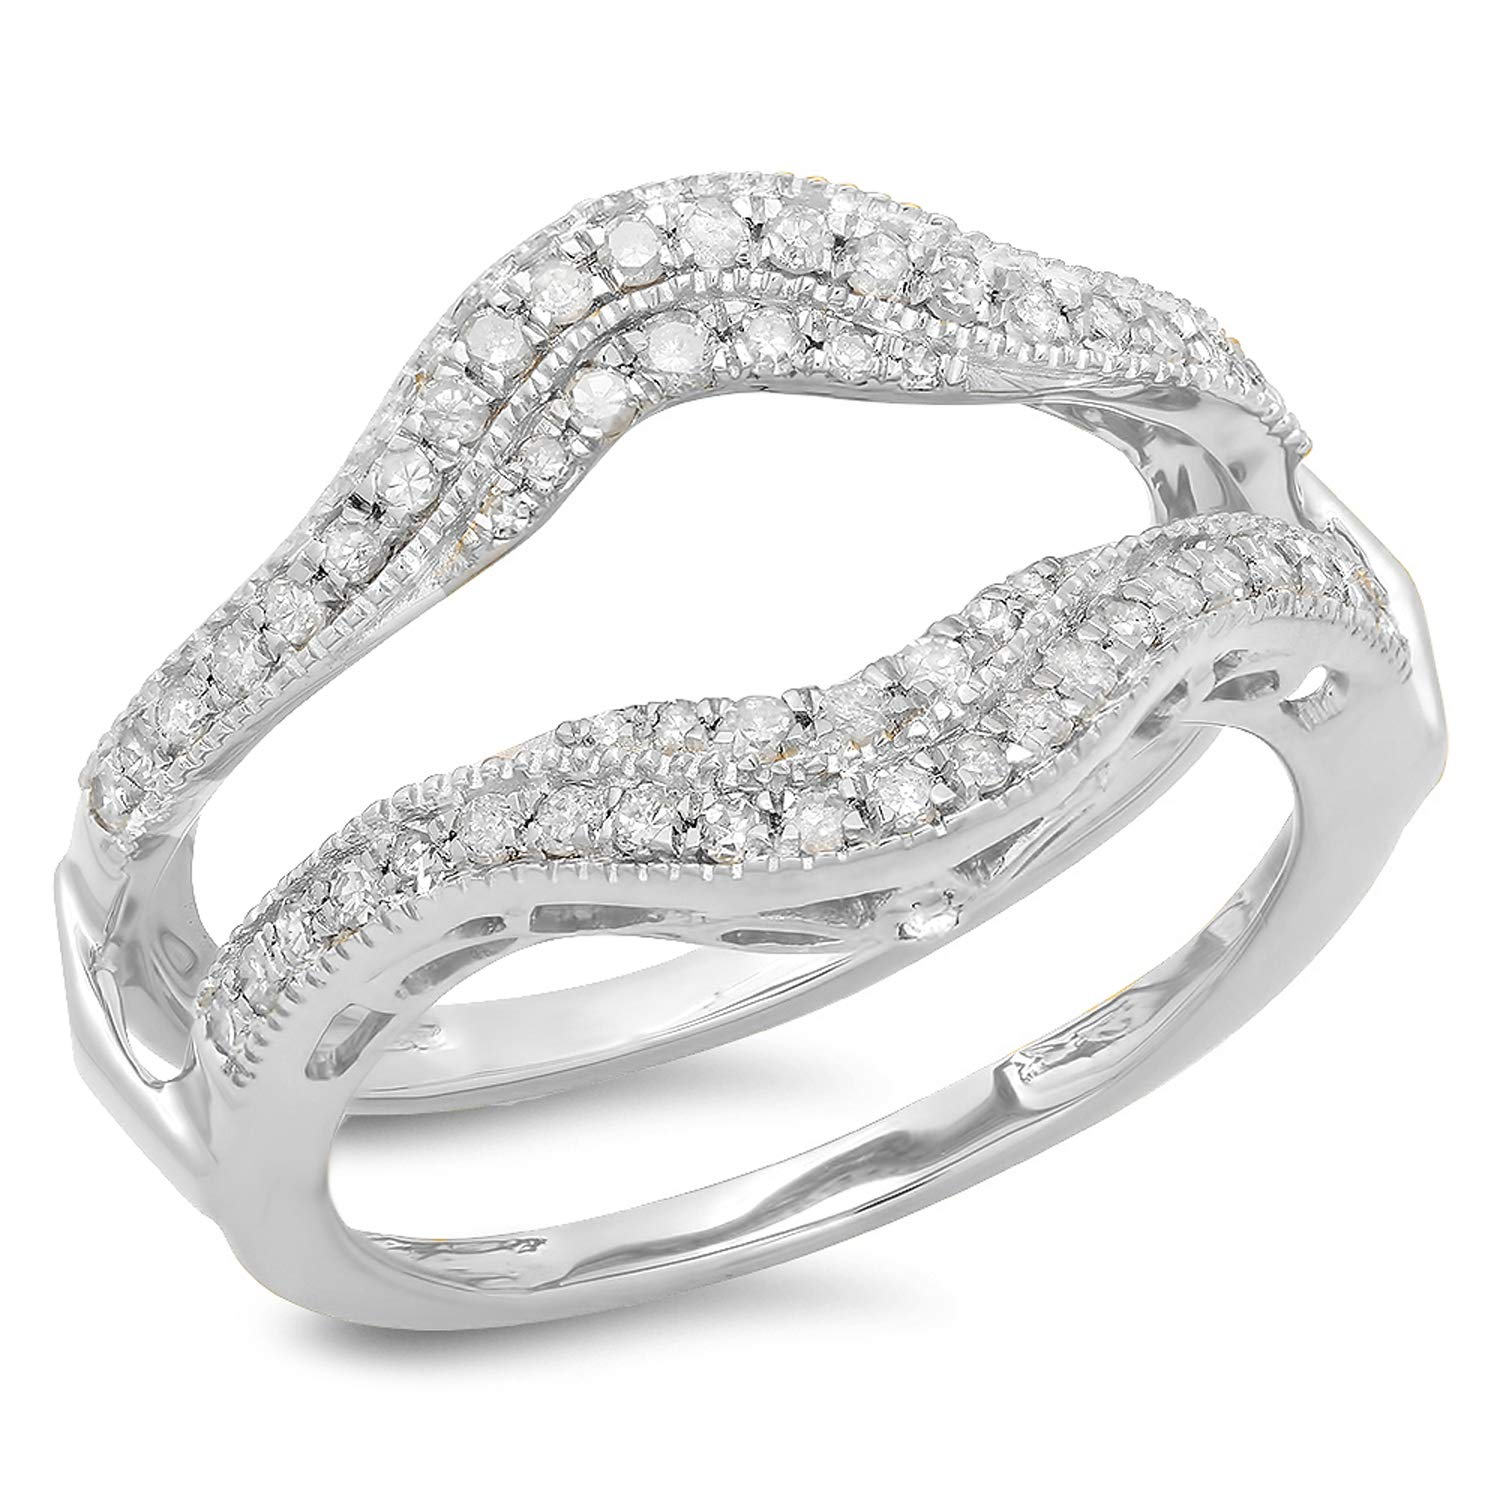 Dazzlingrock Collection 0.52 Carat (ctw) 14K White Diamond Ladies Wedding Enhancer Guard Ring 1/2 CT, White Gold, Size 6.5